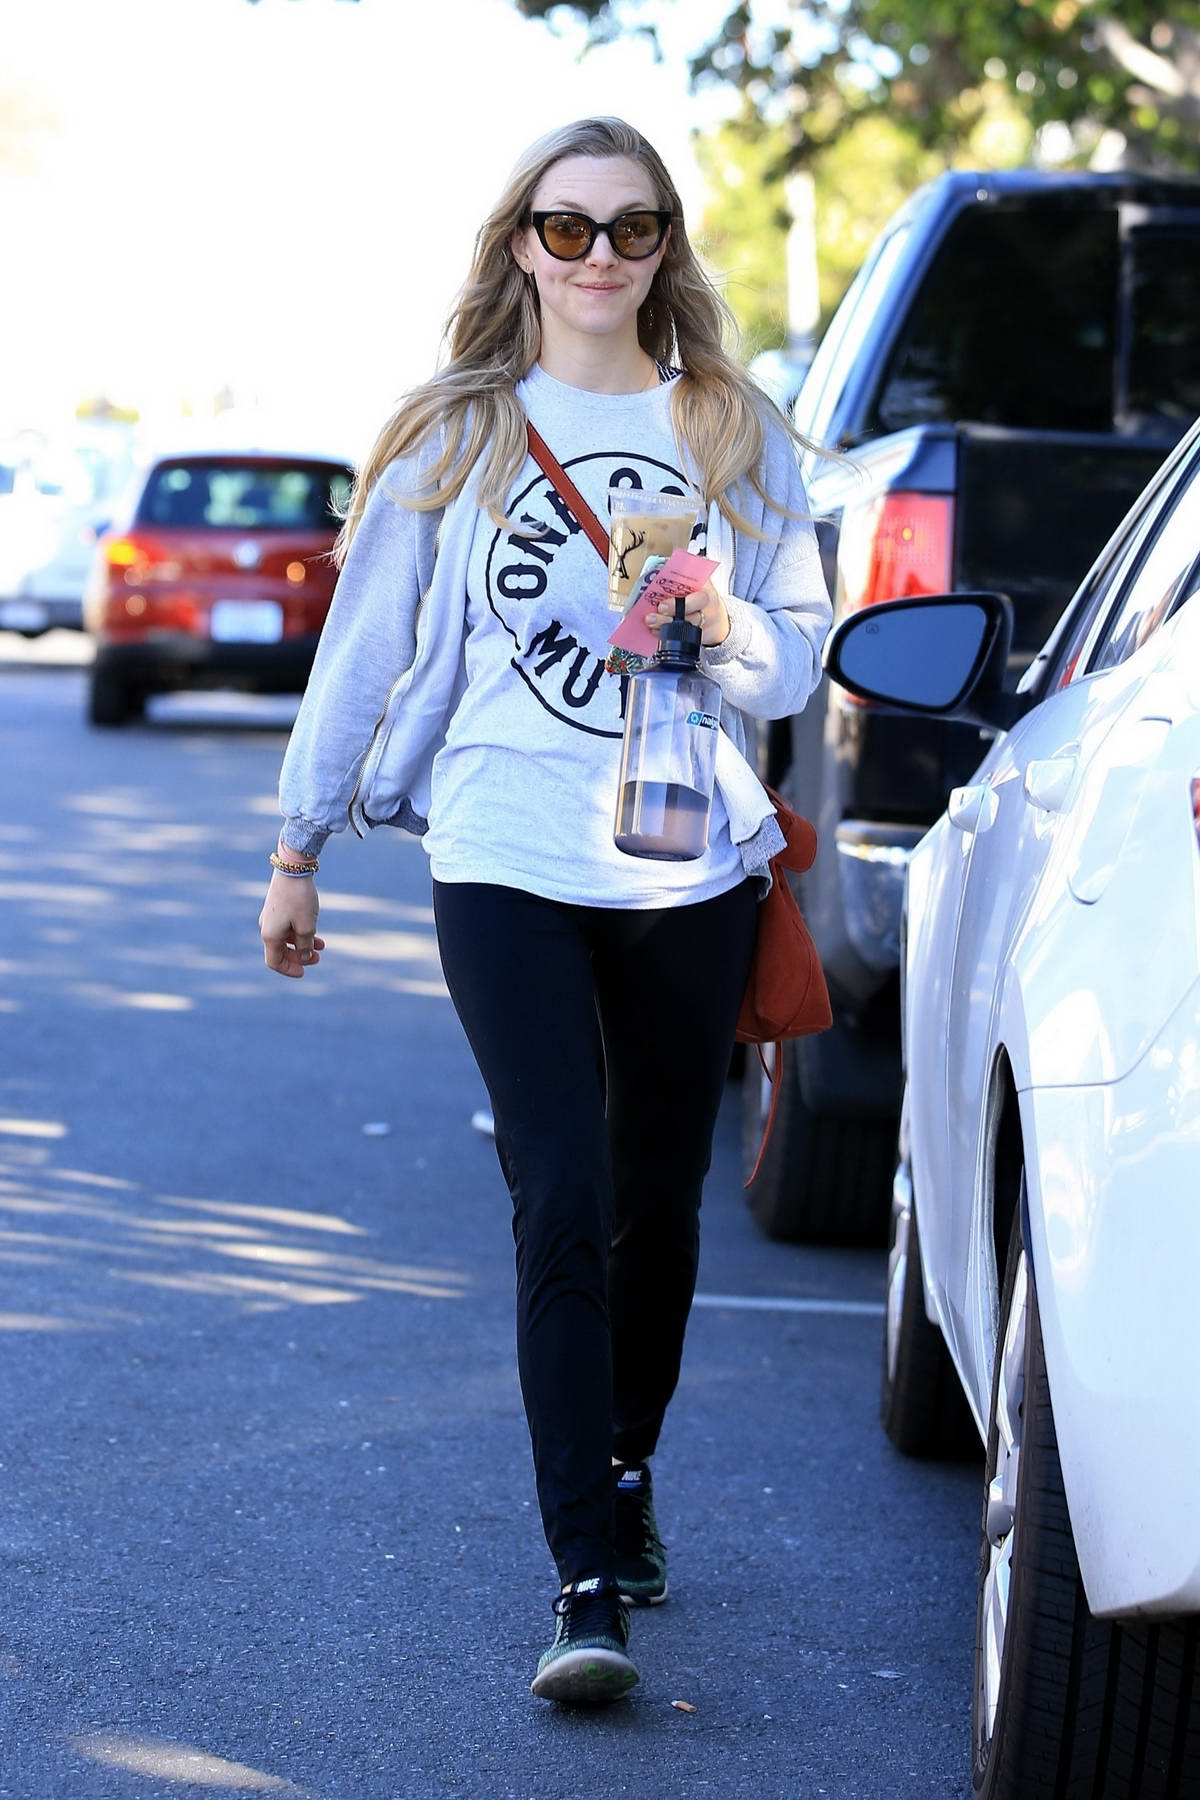 Amanda Seyfried stops by Fred Segal for some shopping in West Hollywood, Los Angeles